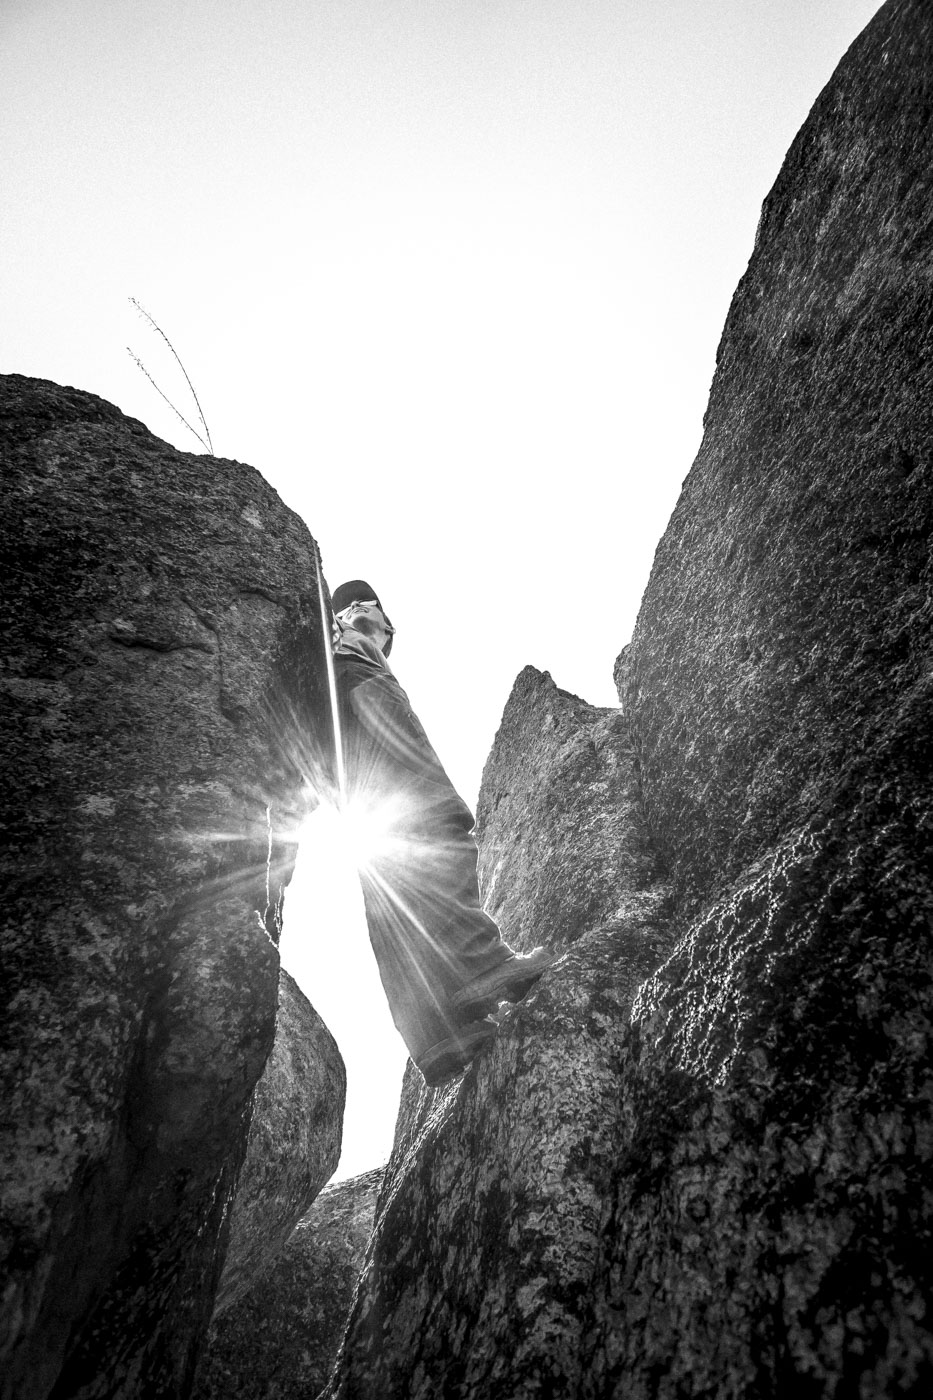 backpacking-wichitamountains-hiking-adventure-explore-toddeclark-a-8.jpg